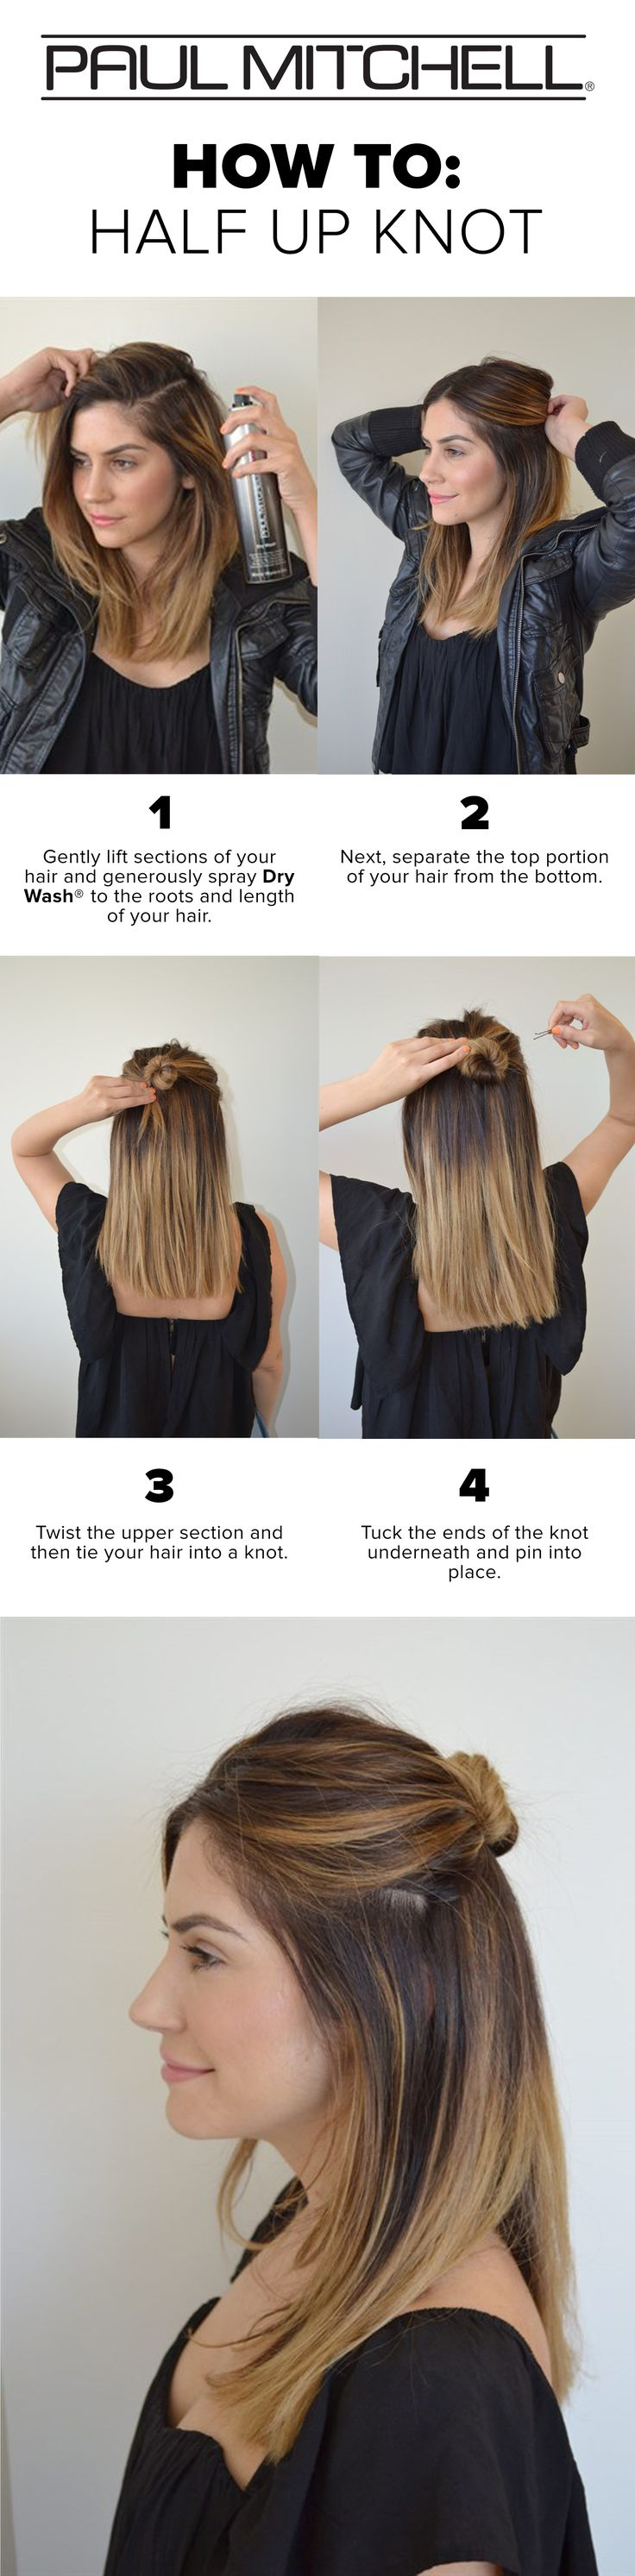 A Step by Step Guide to the Half Up Knot #BeyondTheBottle